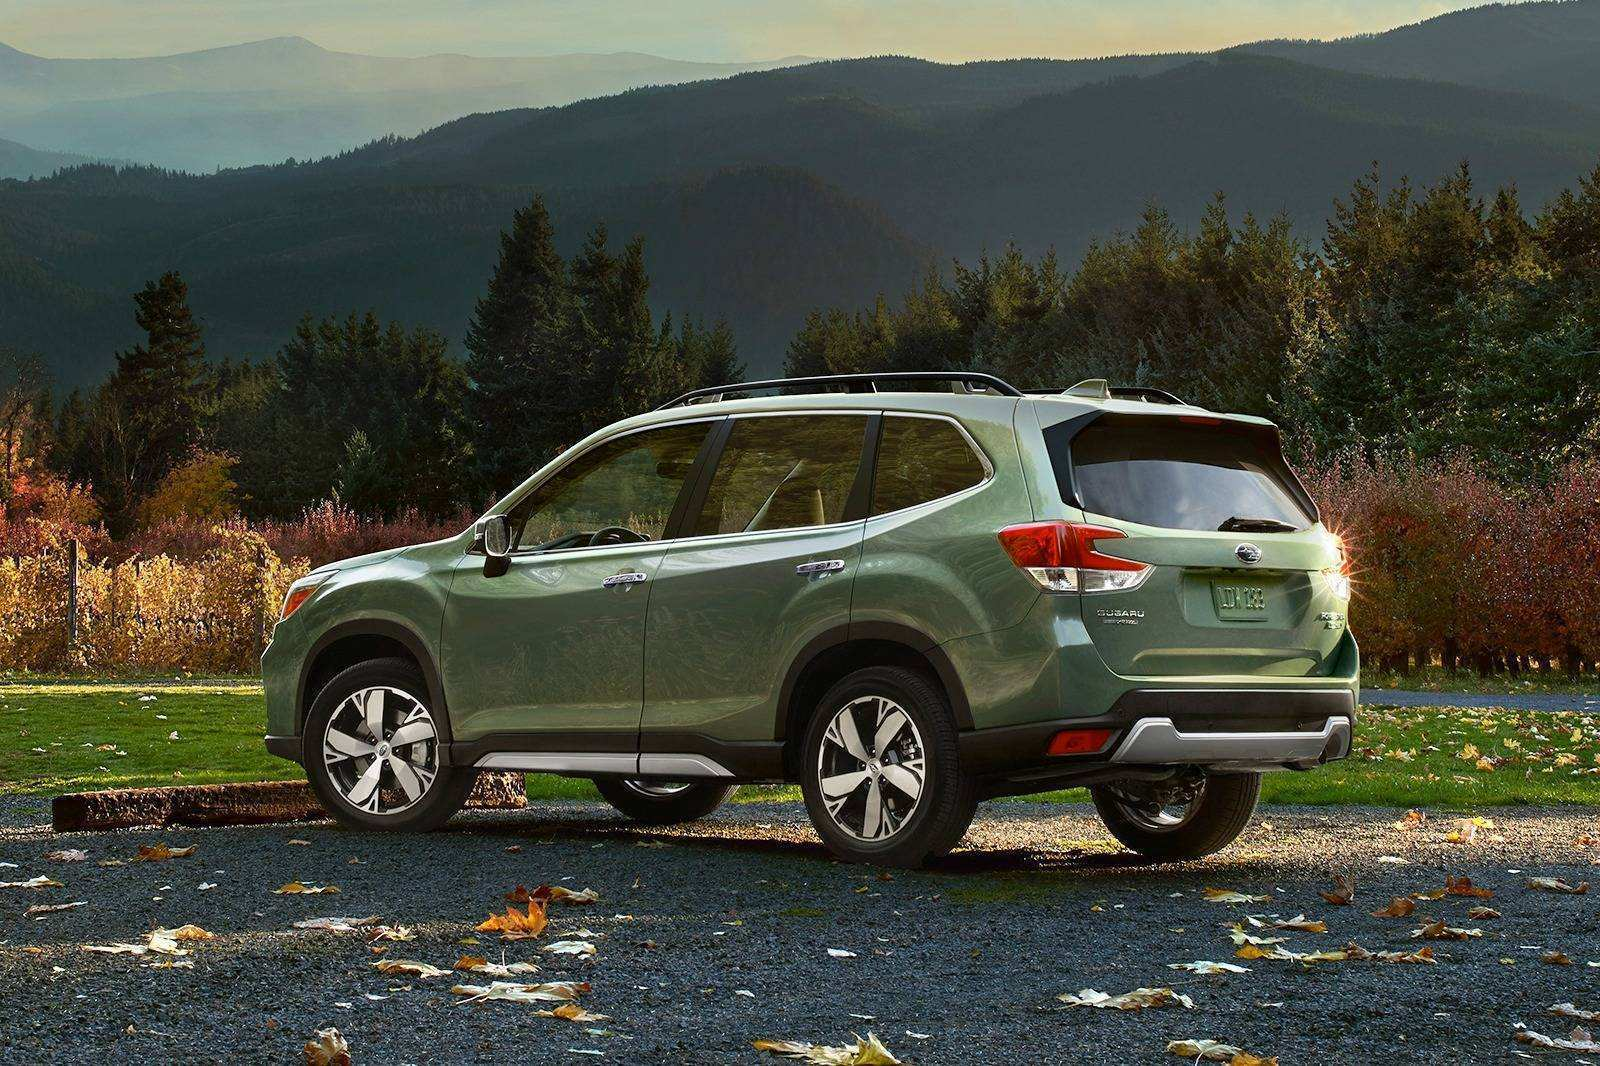 75 Best Review 2019 Subaru Forester Mpg Picture with 2019 Subaru Forester Mpg